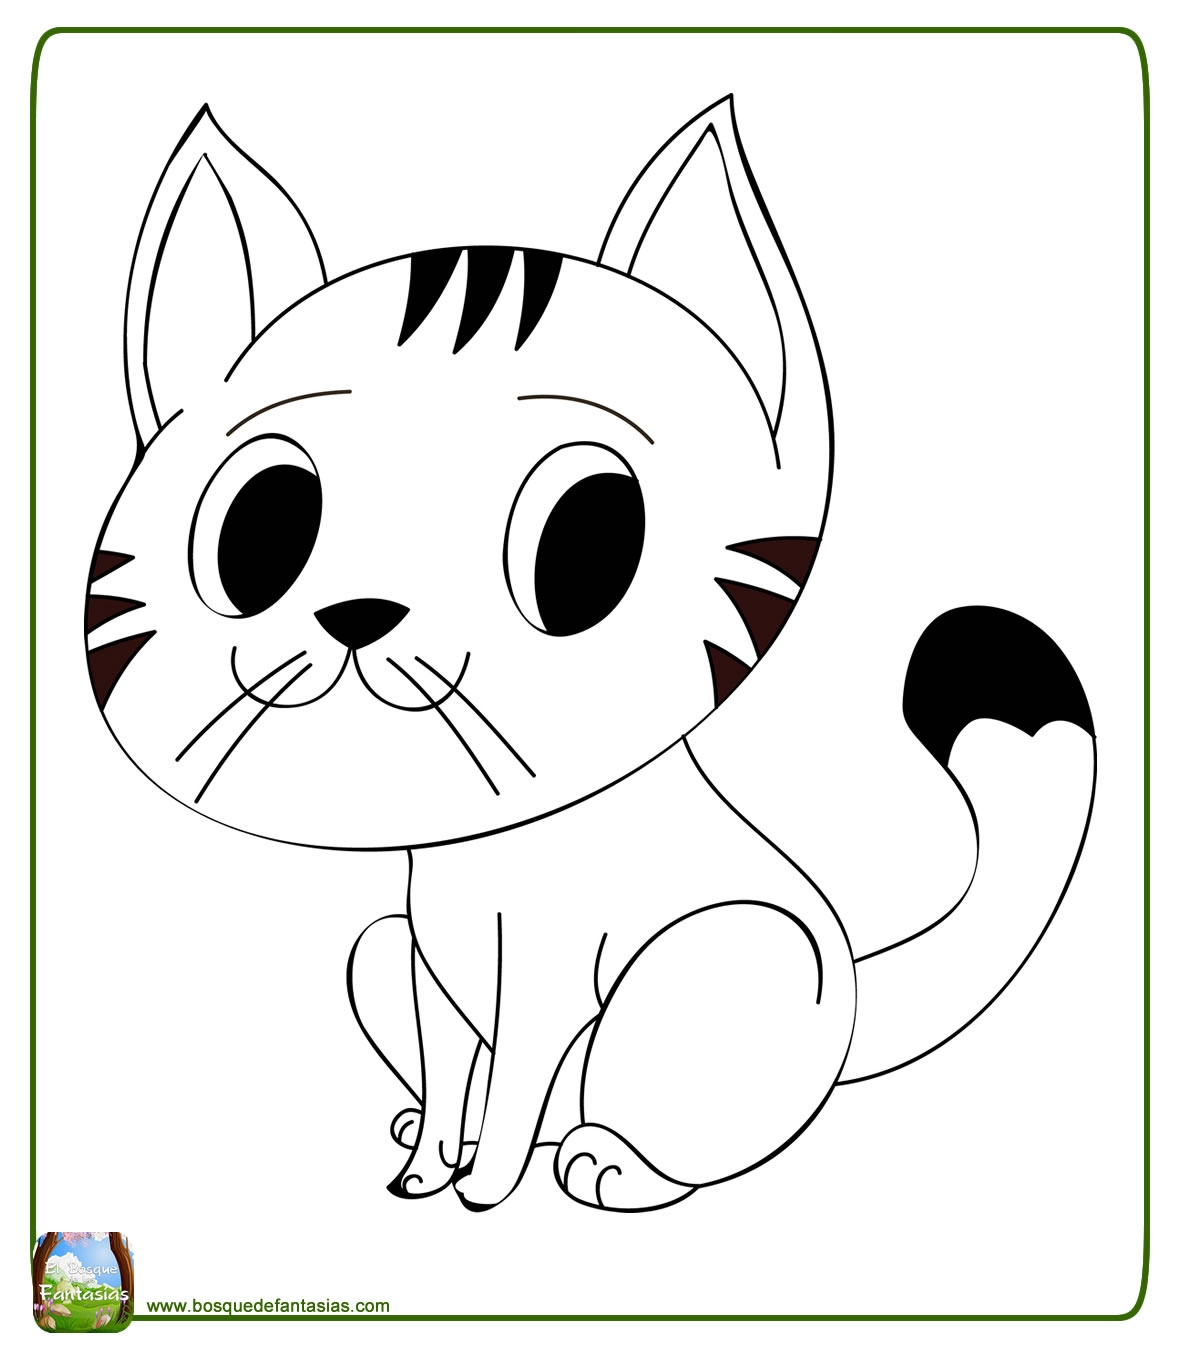 mexico coloring pages - gatos colorear pintar